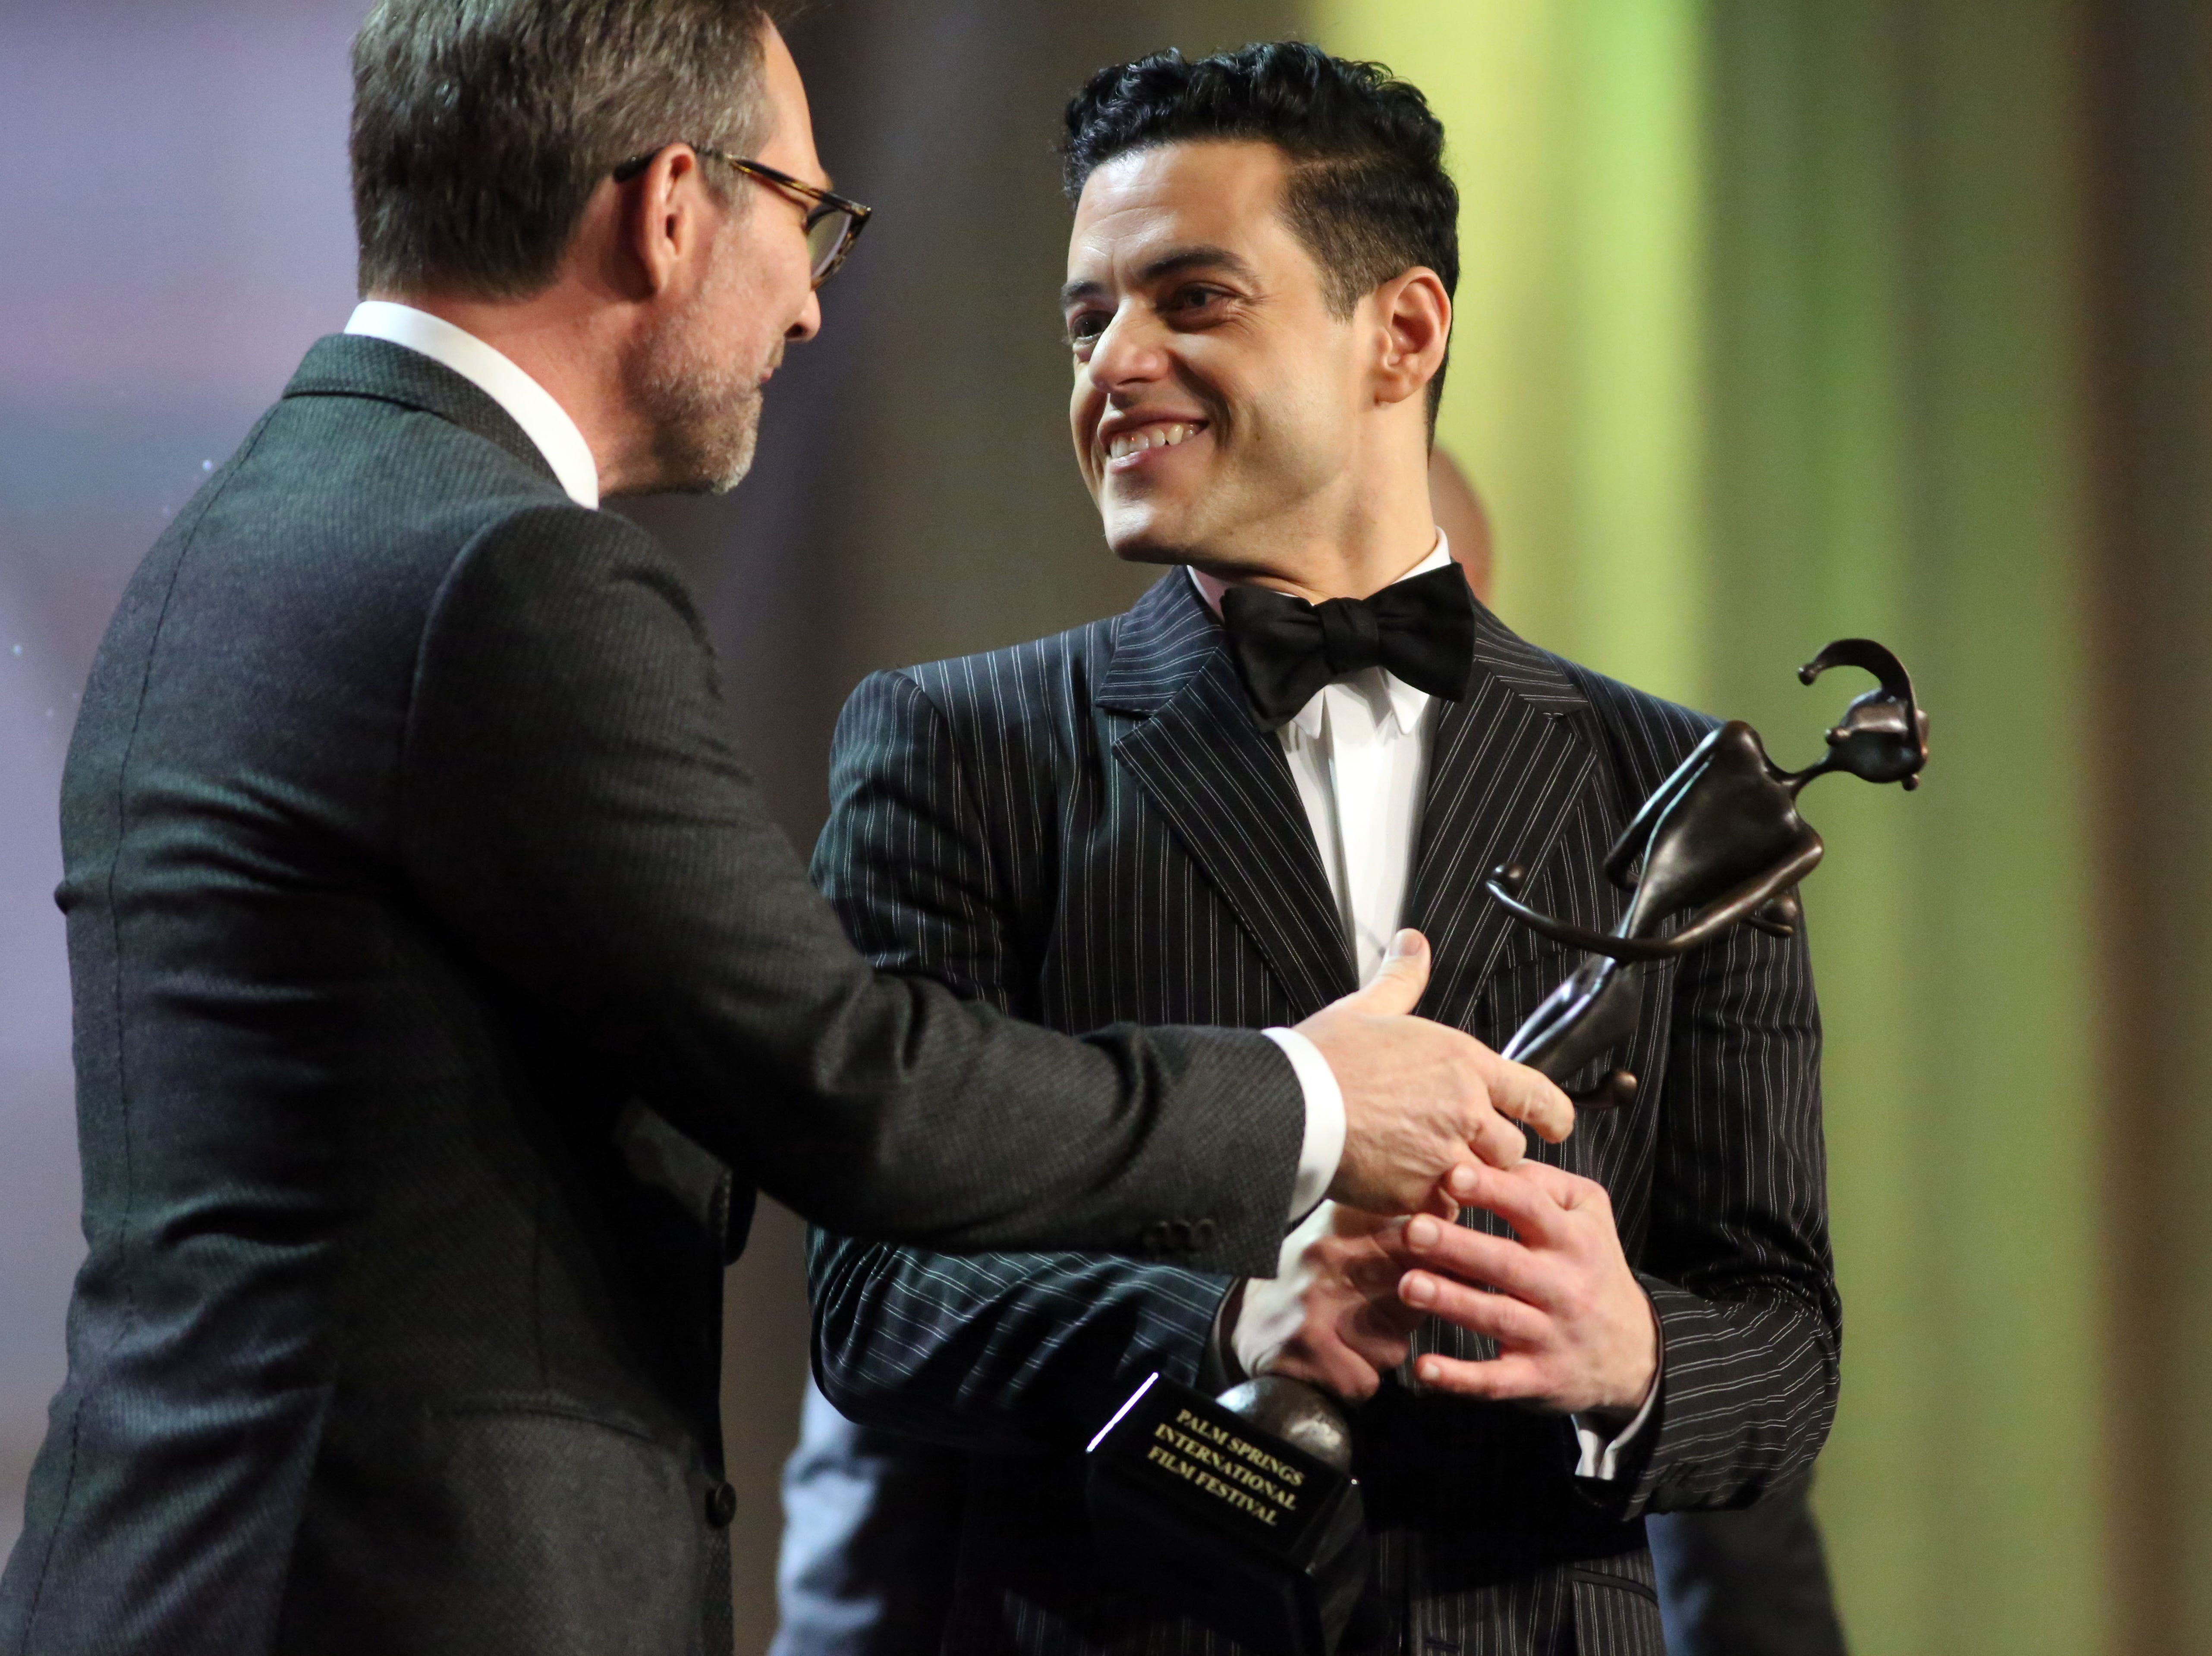 Rami Malek receives the Breakthrough Performance Award presented to him by Christian Slater on Thursday, January 3, 2018 at the Palm Springs International Film Festival Gala in Palm Springs.